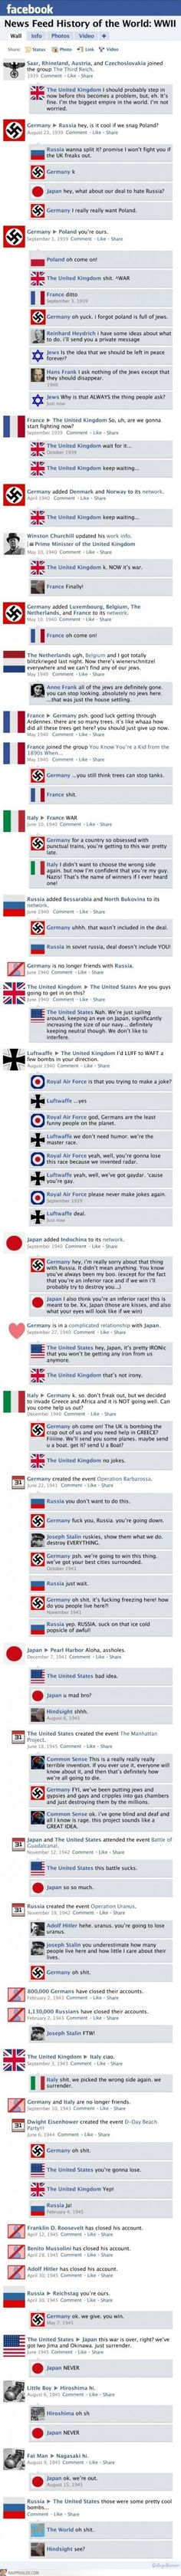 WWII Facebook feed [PIC] history lesson via Facebook. Another perceptive on WWII